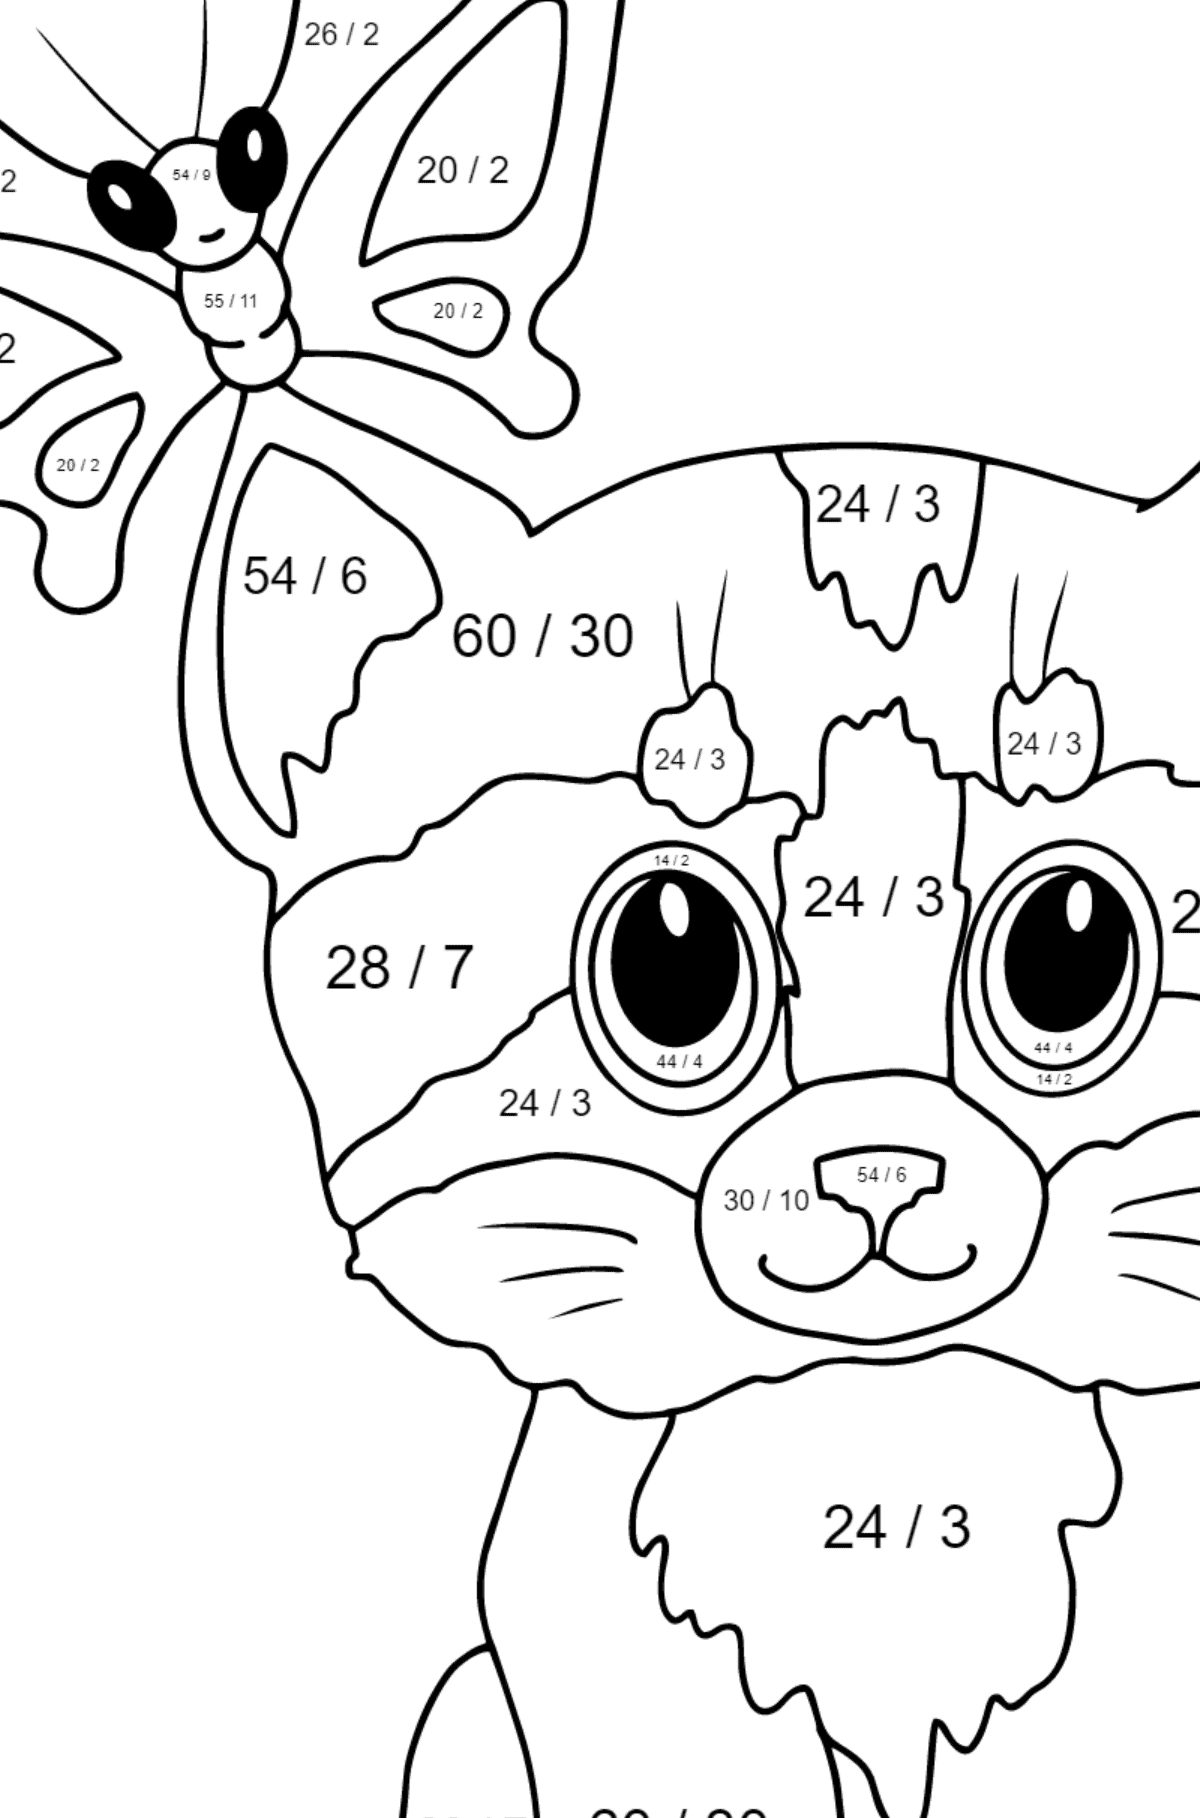 Coloring Page - A Cat with a Butterfly on Its Ear - Math Coloring - Division for Children